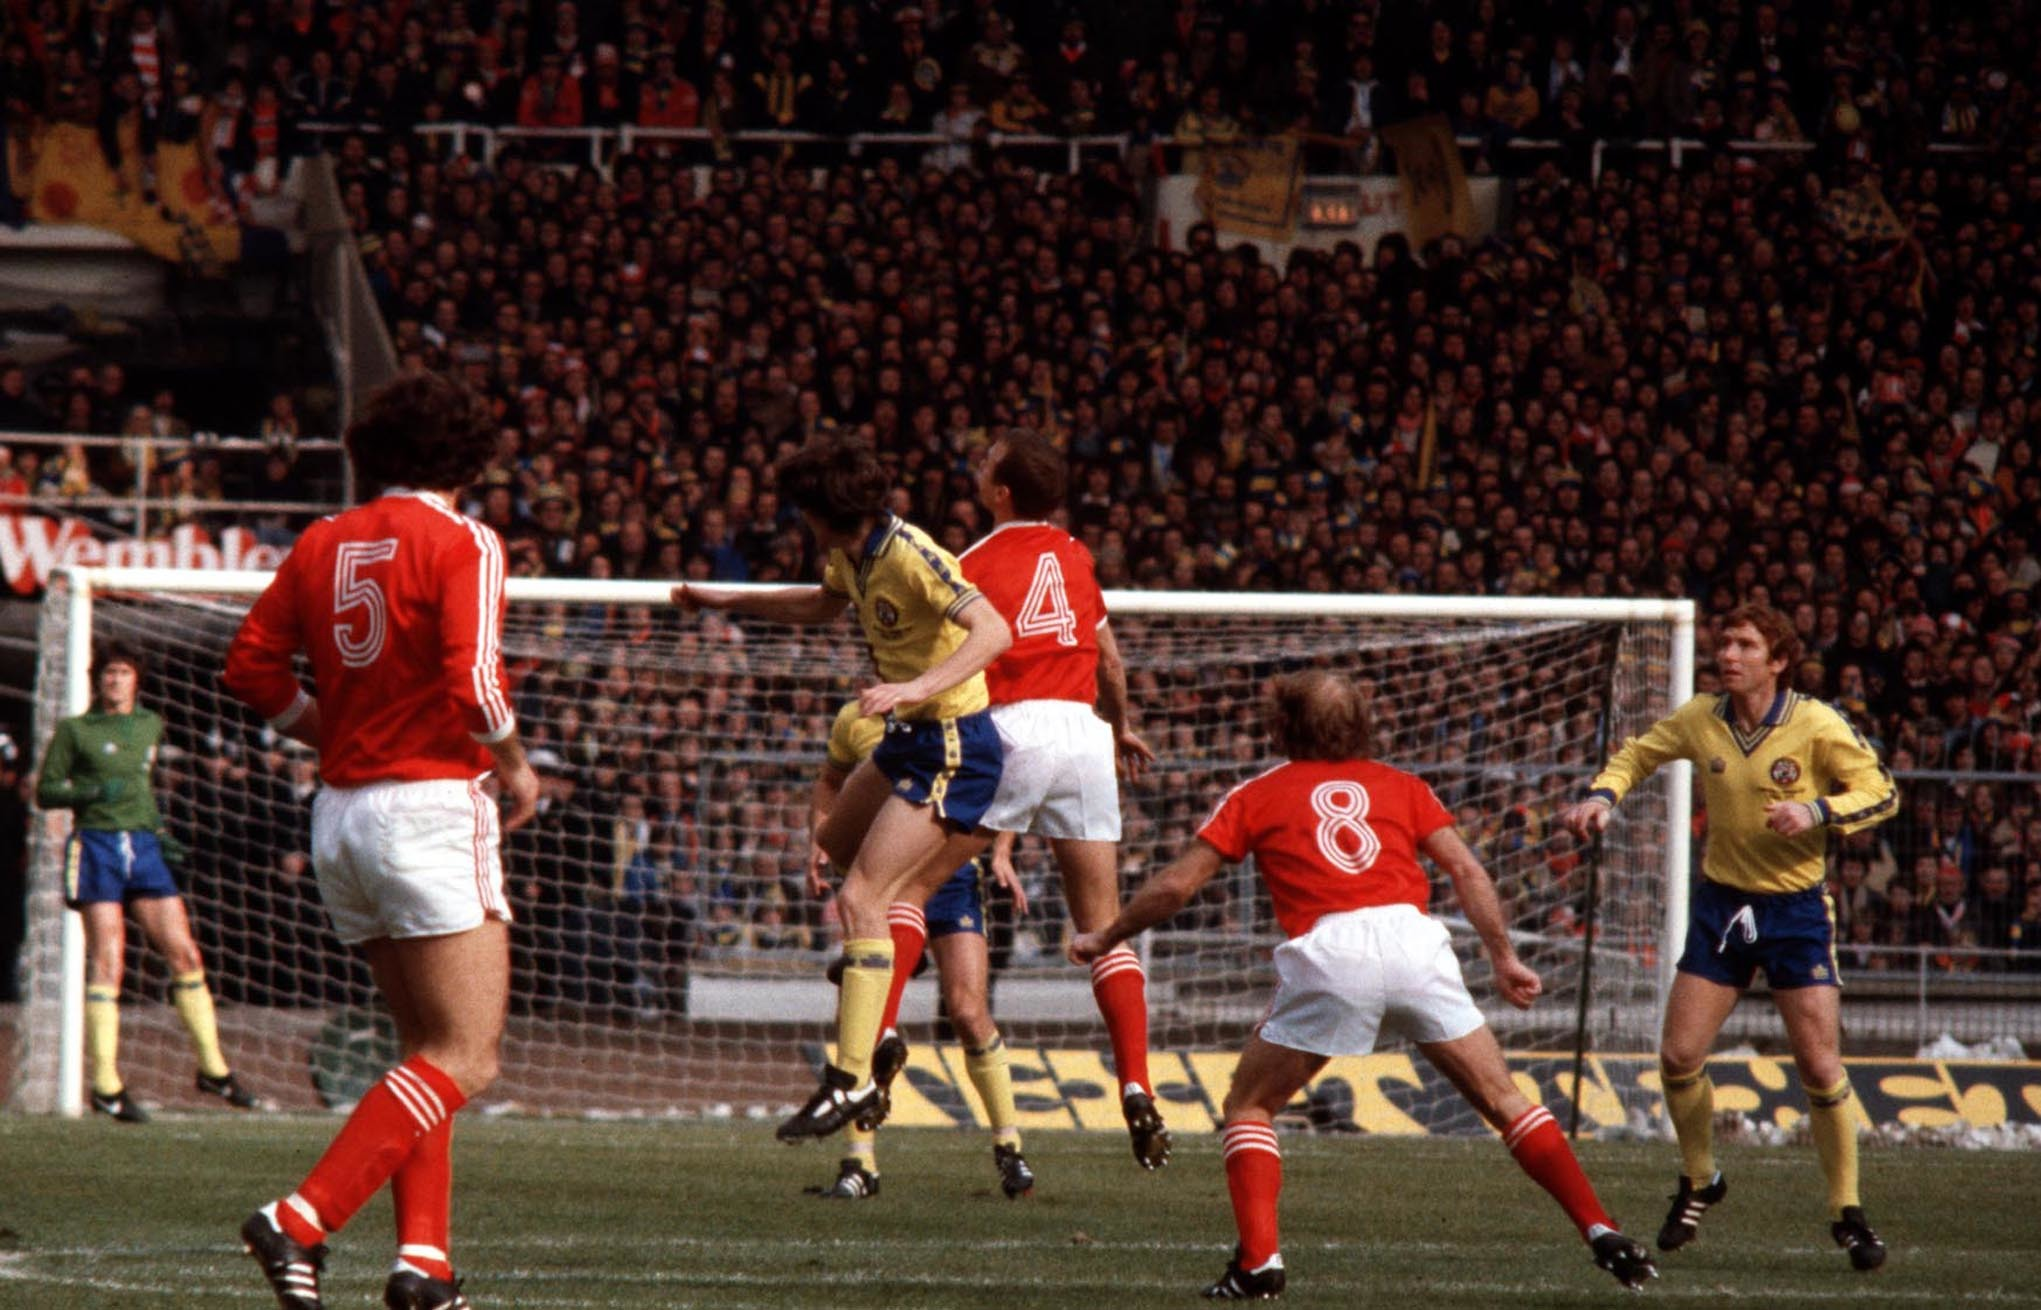 Nottingham Forest skipper John McGovern challenges for the ball with Steve Williams (yellow top) as Saints captain Alan Ball looks on